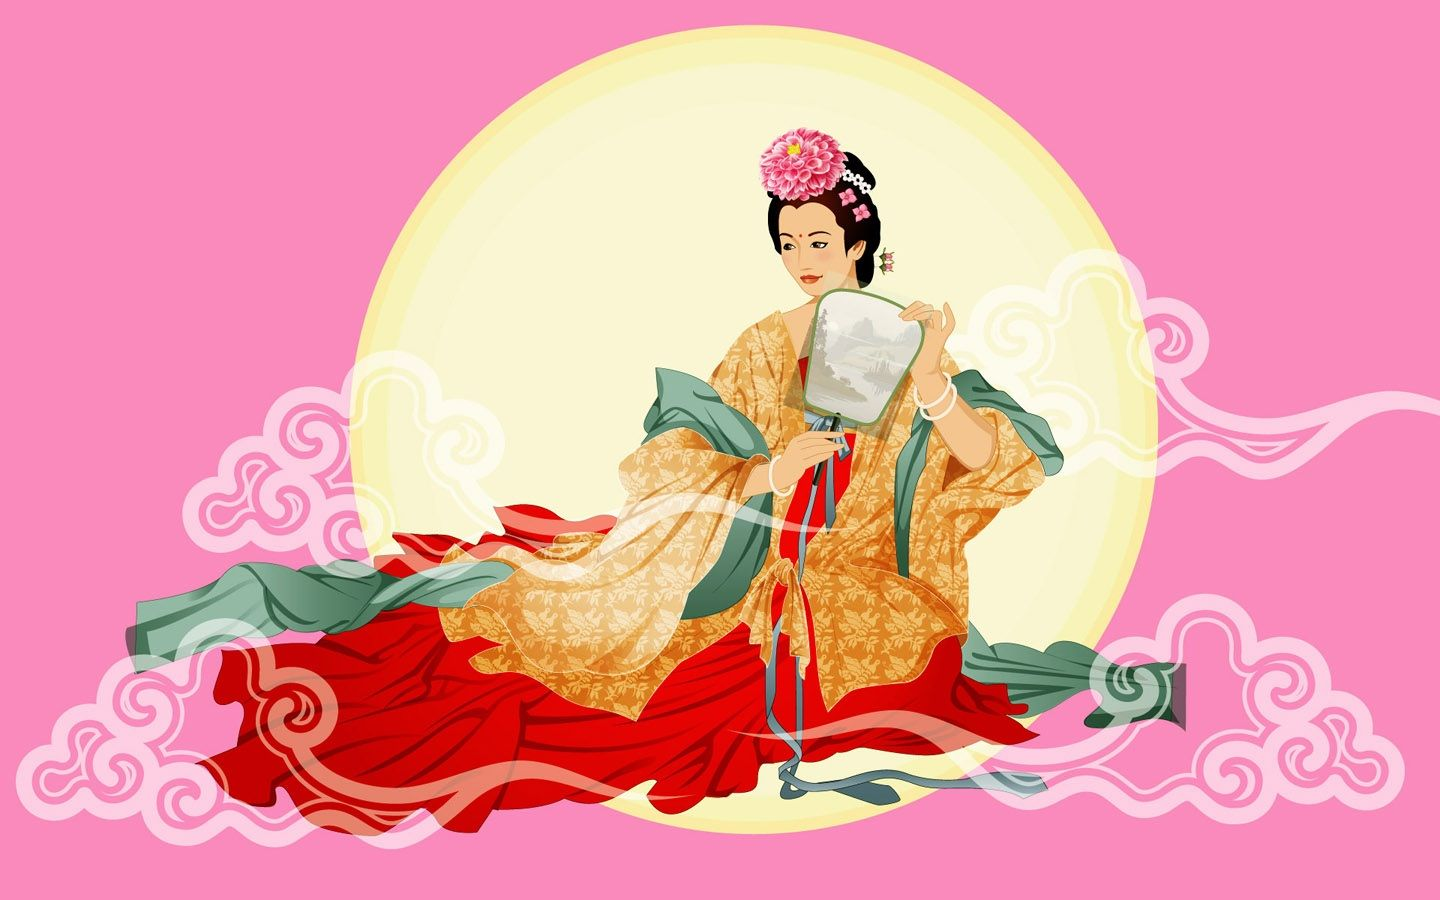 asian illustrations - Google Search